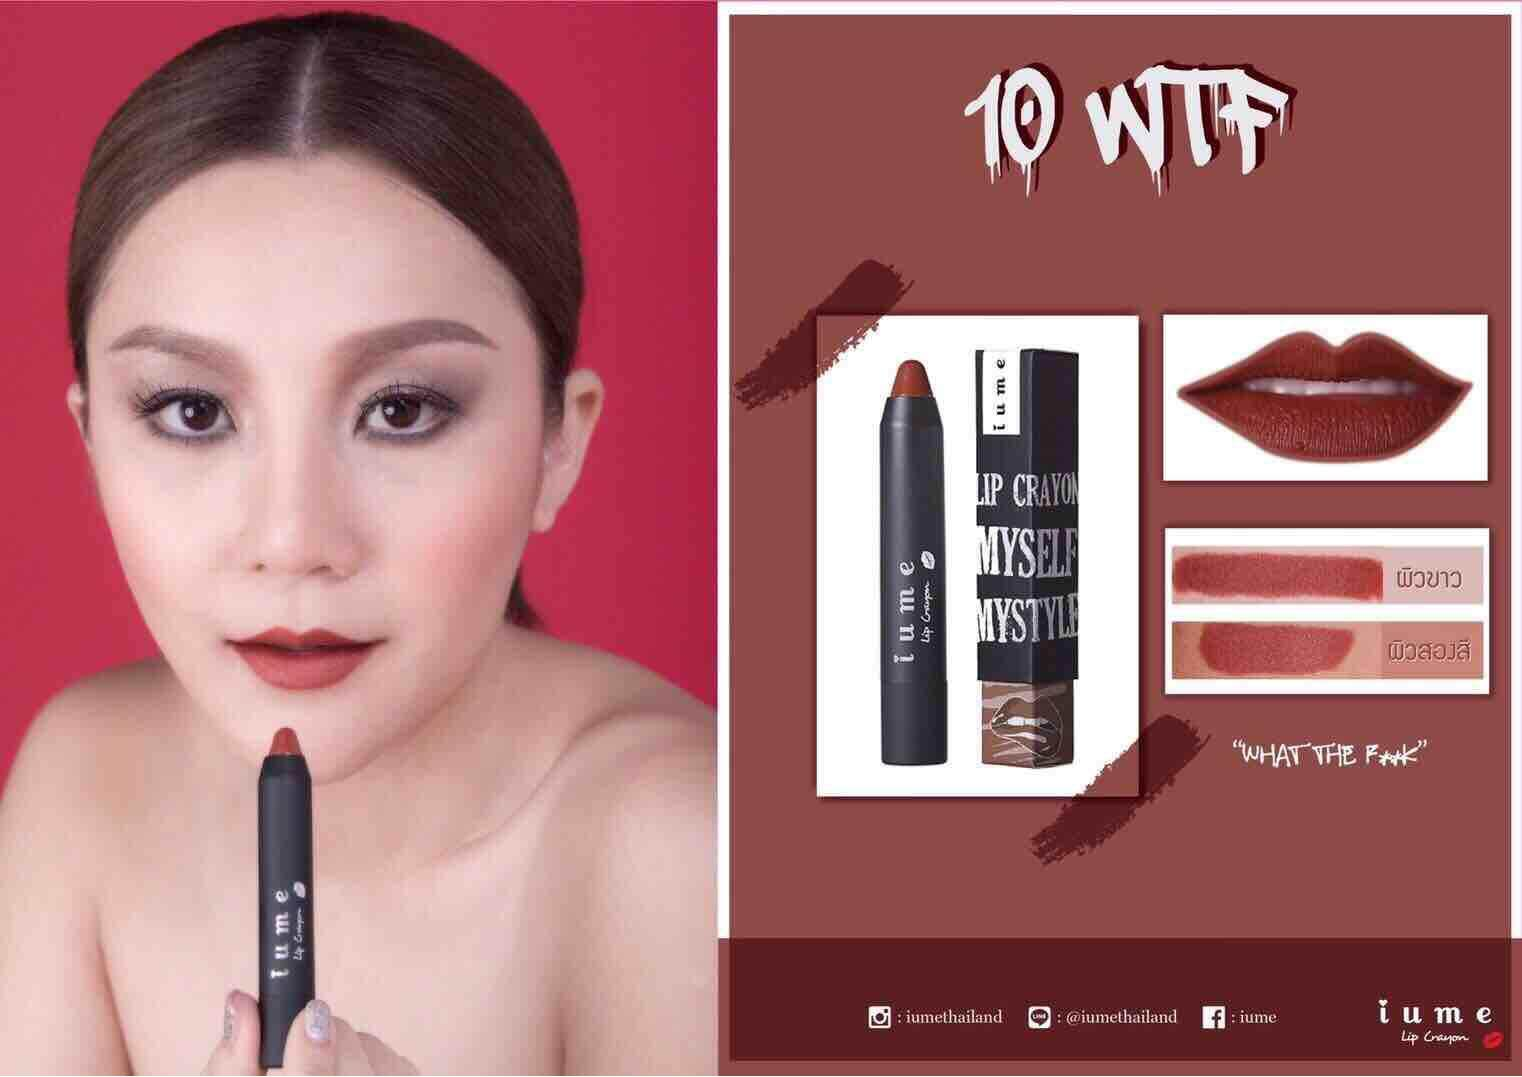 Iume Lip Crayon 10 Wtf By Iume.